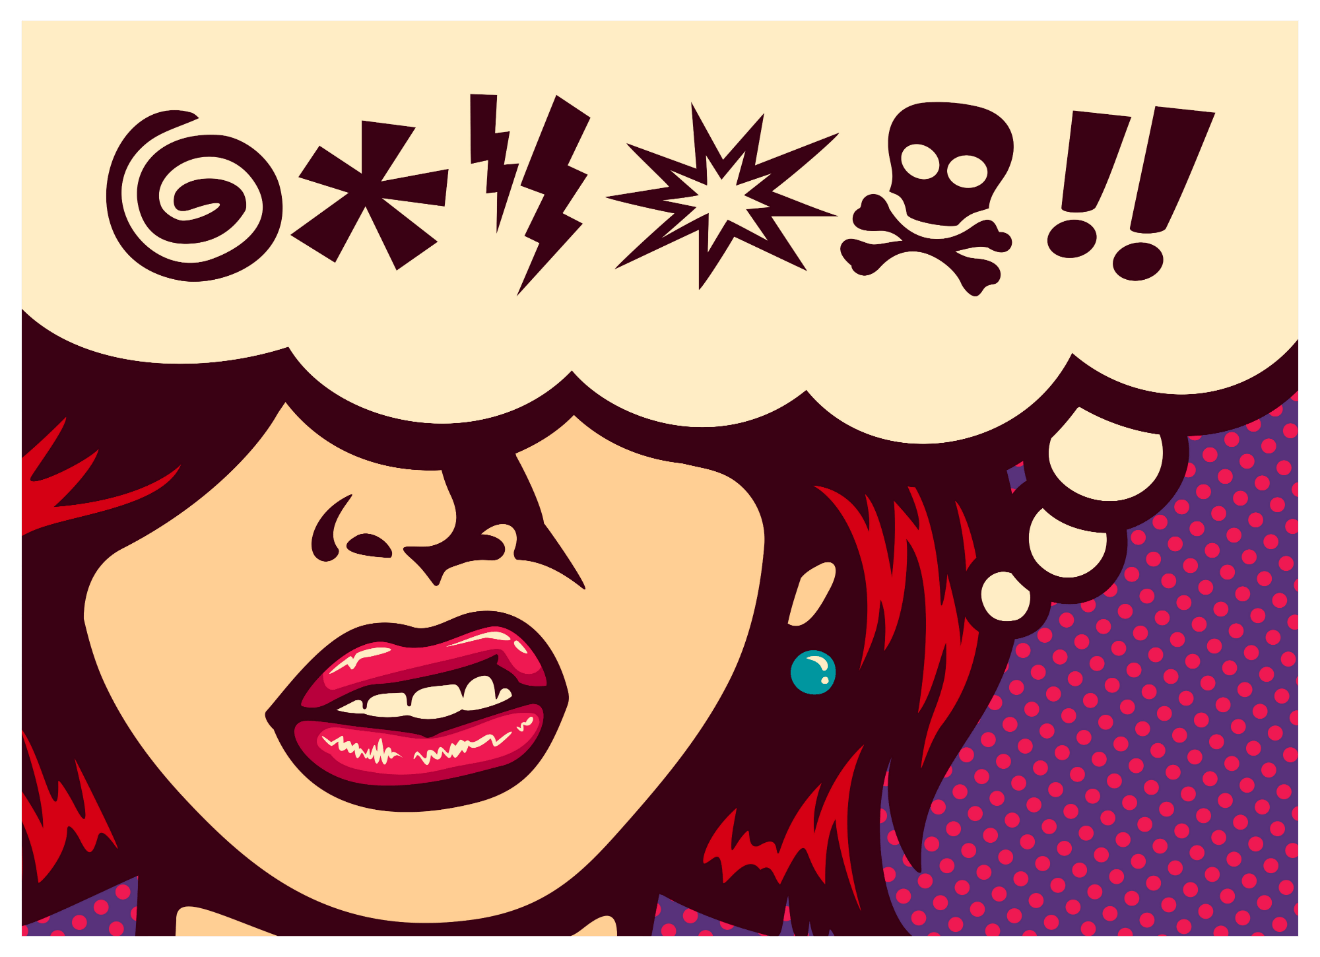 angry woman expletives cartoon